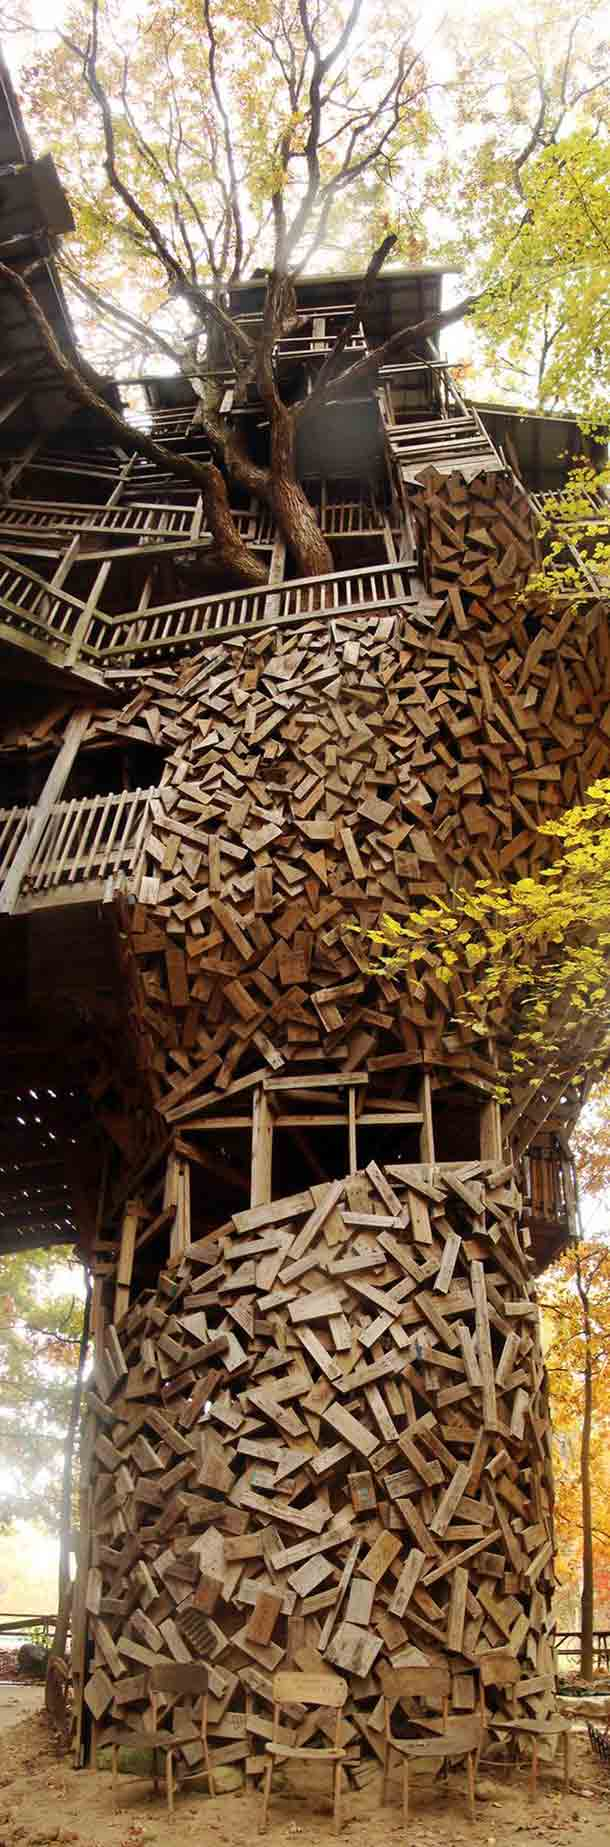 towreing treehouse